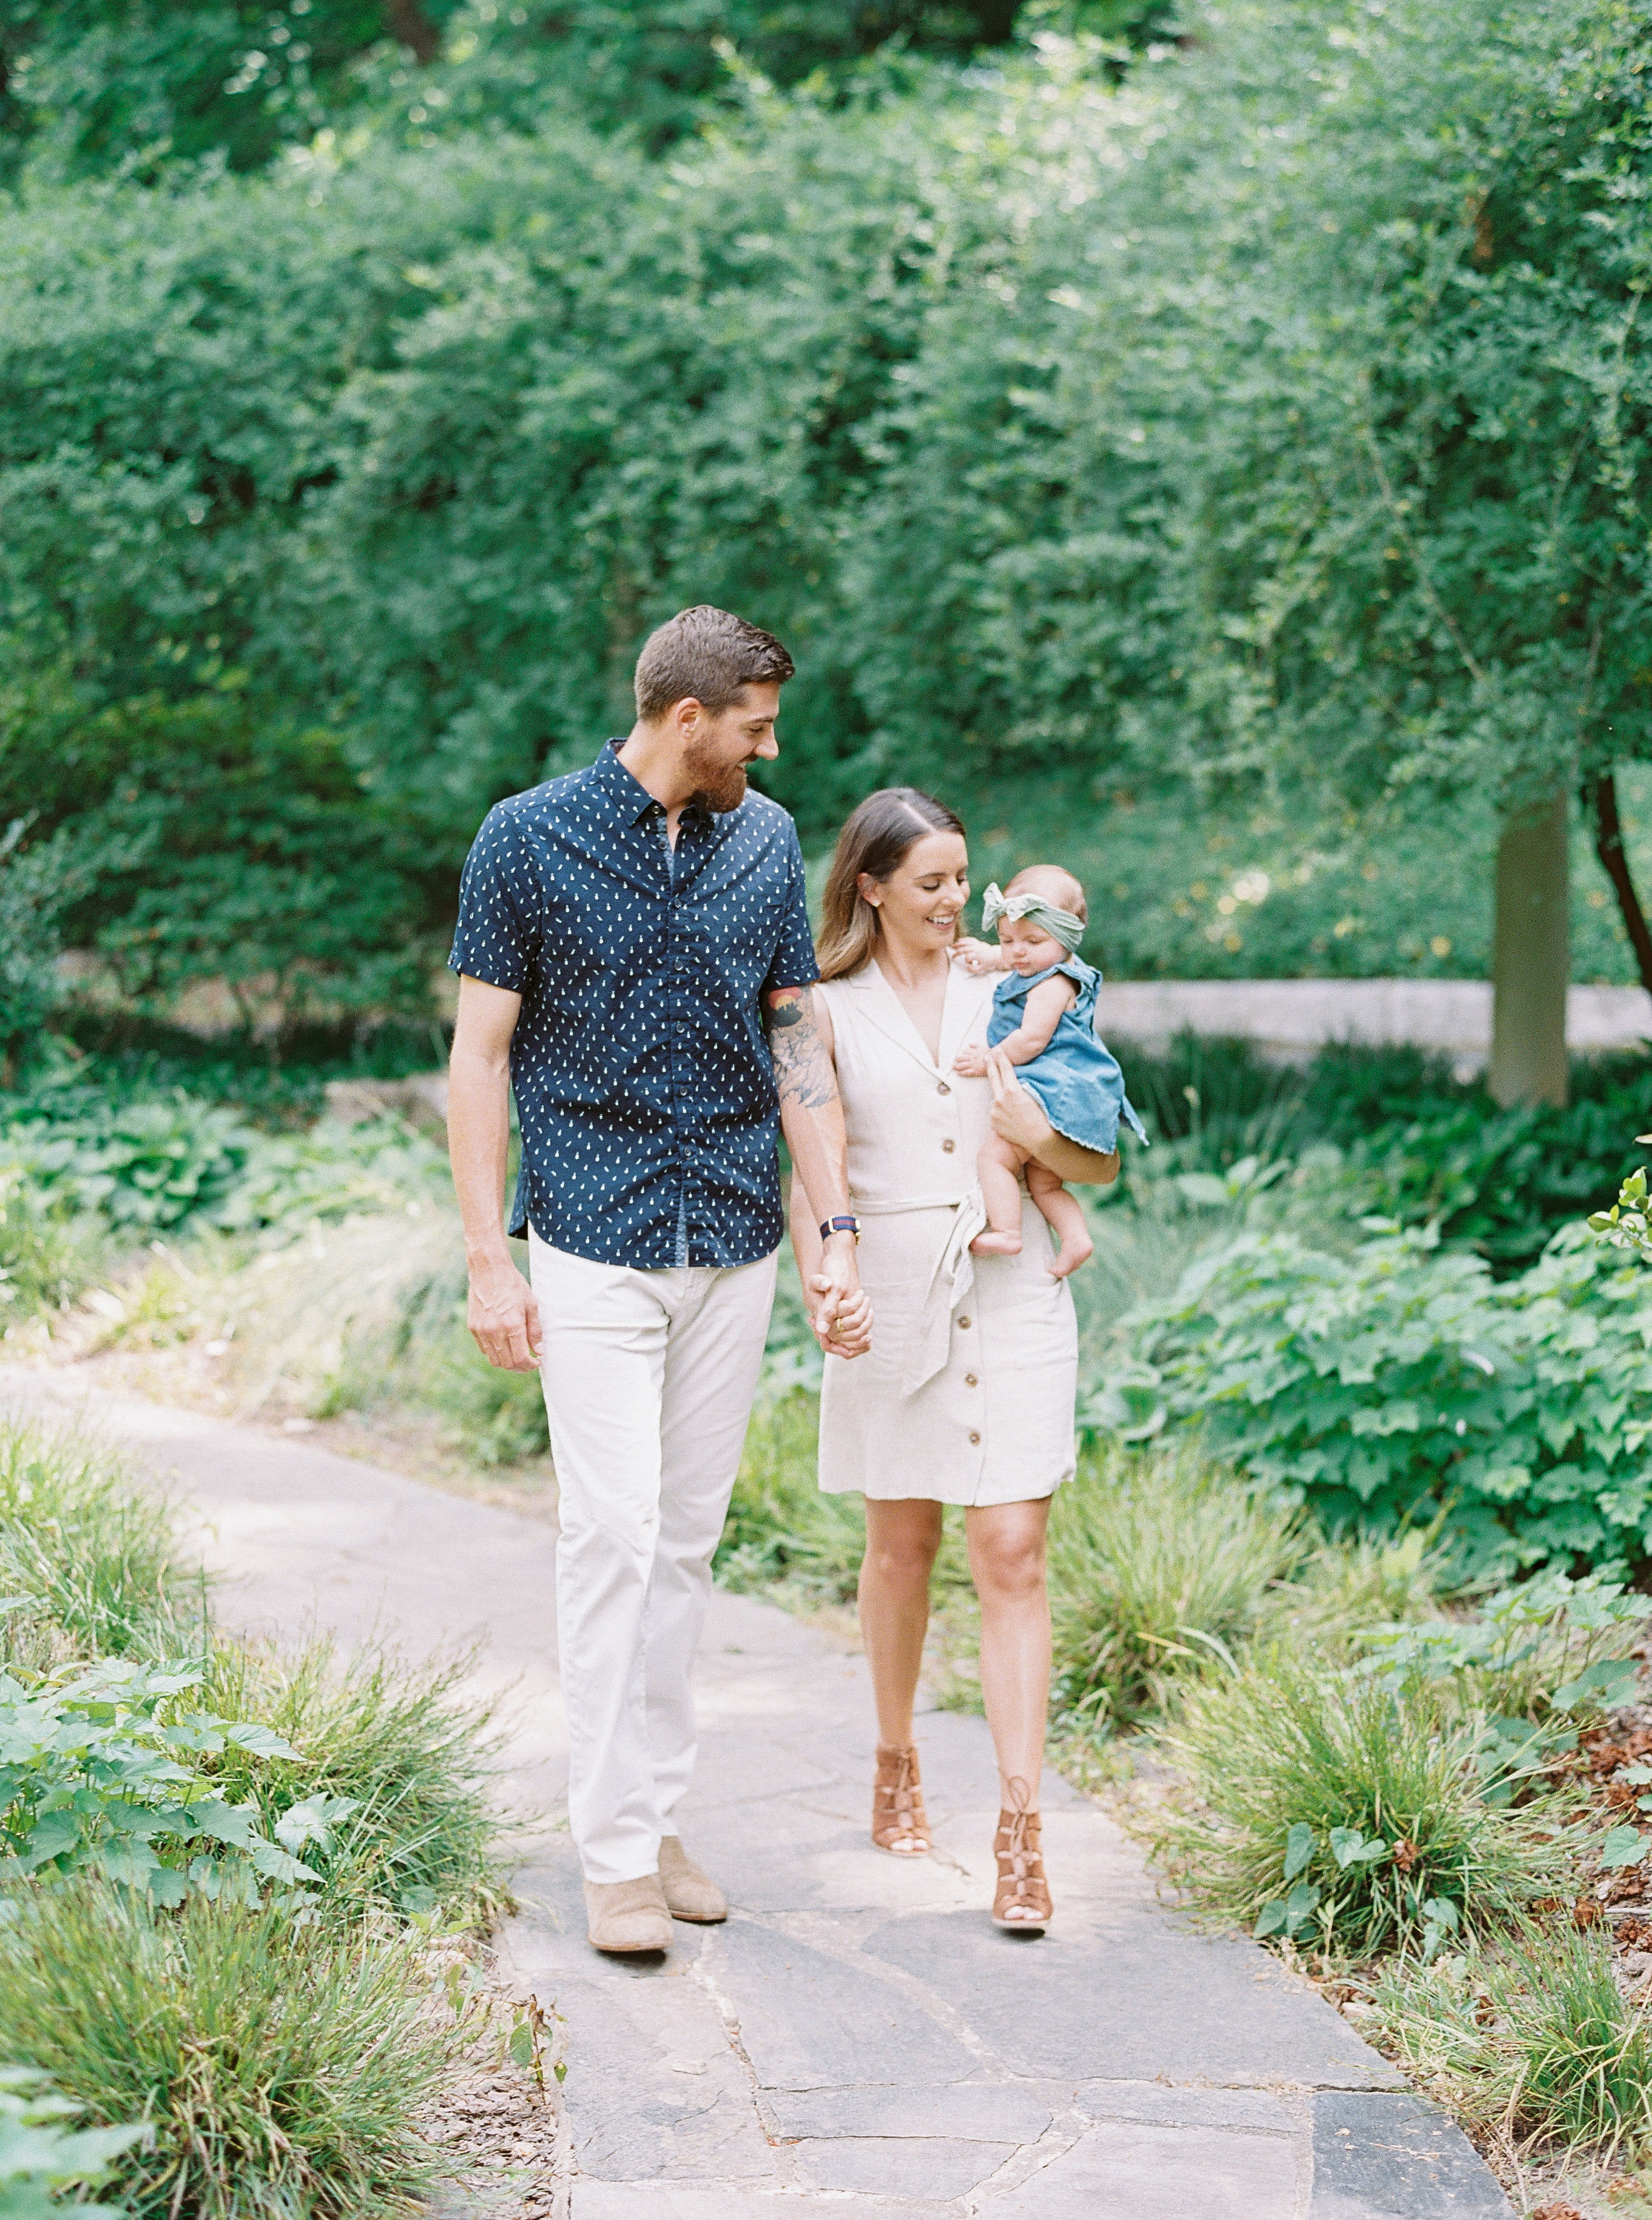 Cator-woolford-gardens-family-photos-atlanta-film-wedding-photographer-7.jpg